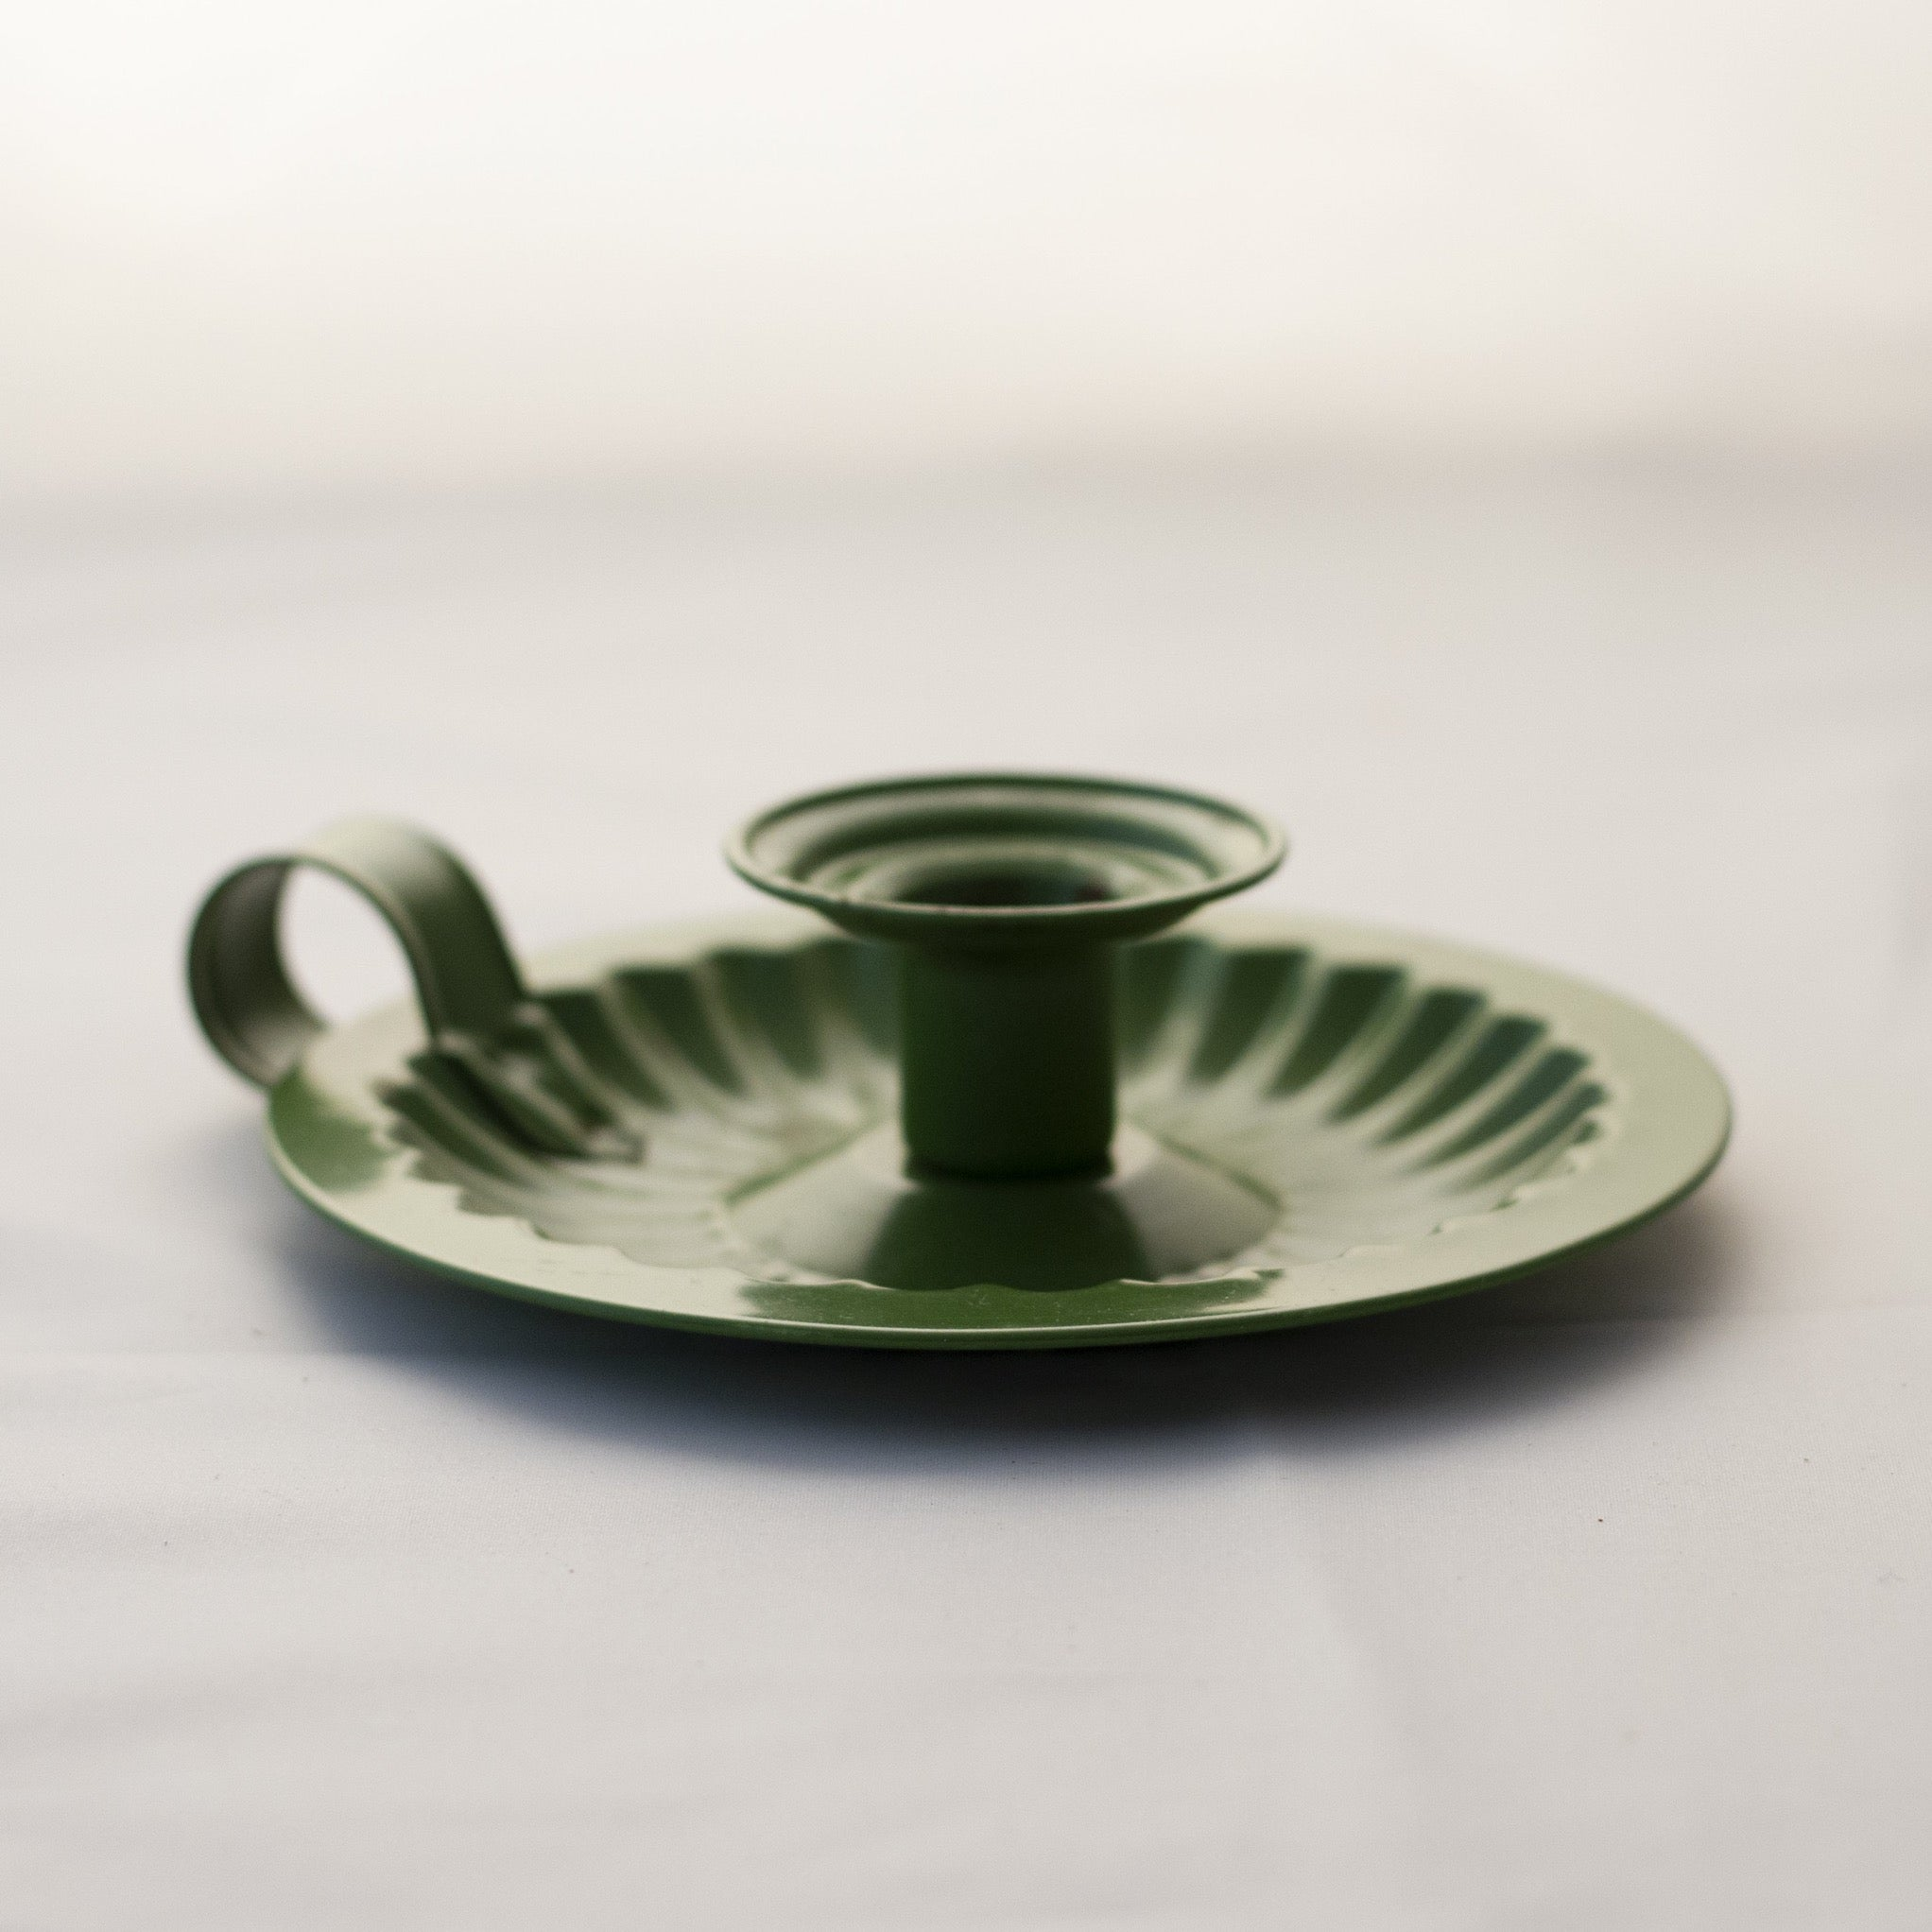 Tin CHAMBERSTICK CANDLE HOLDER Painted Green Made in Hong Kong